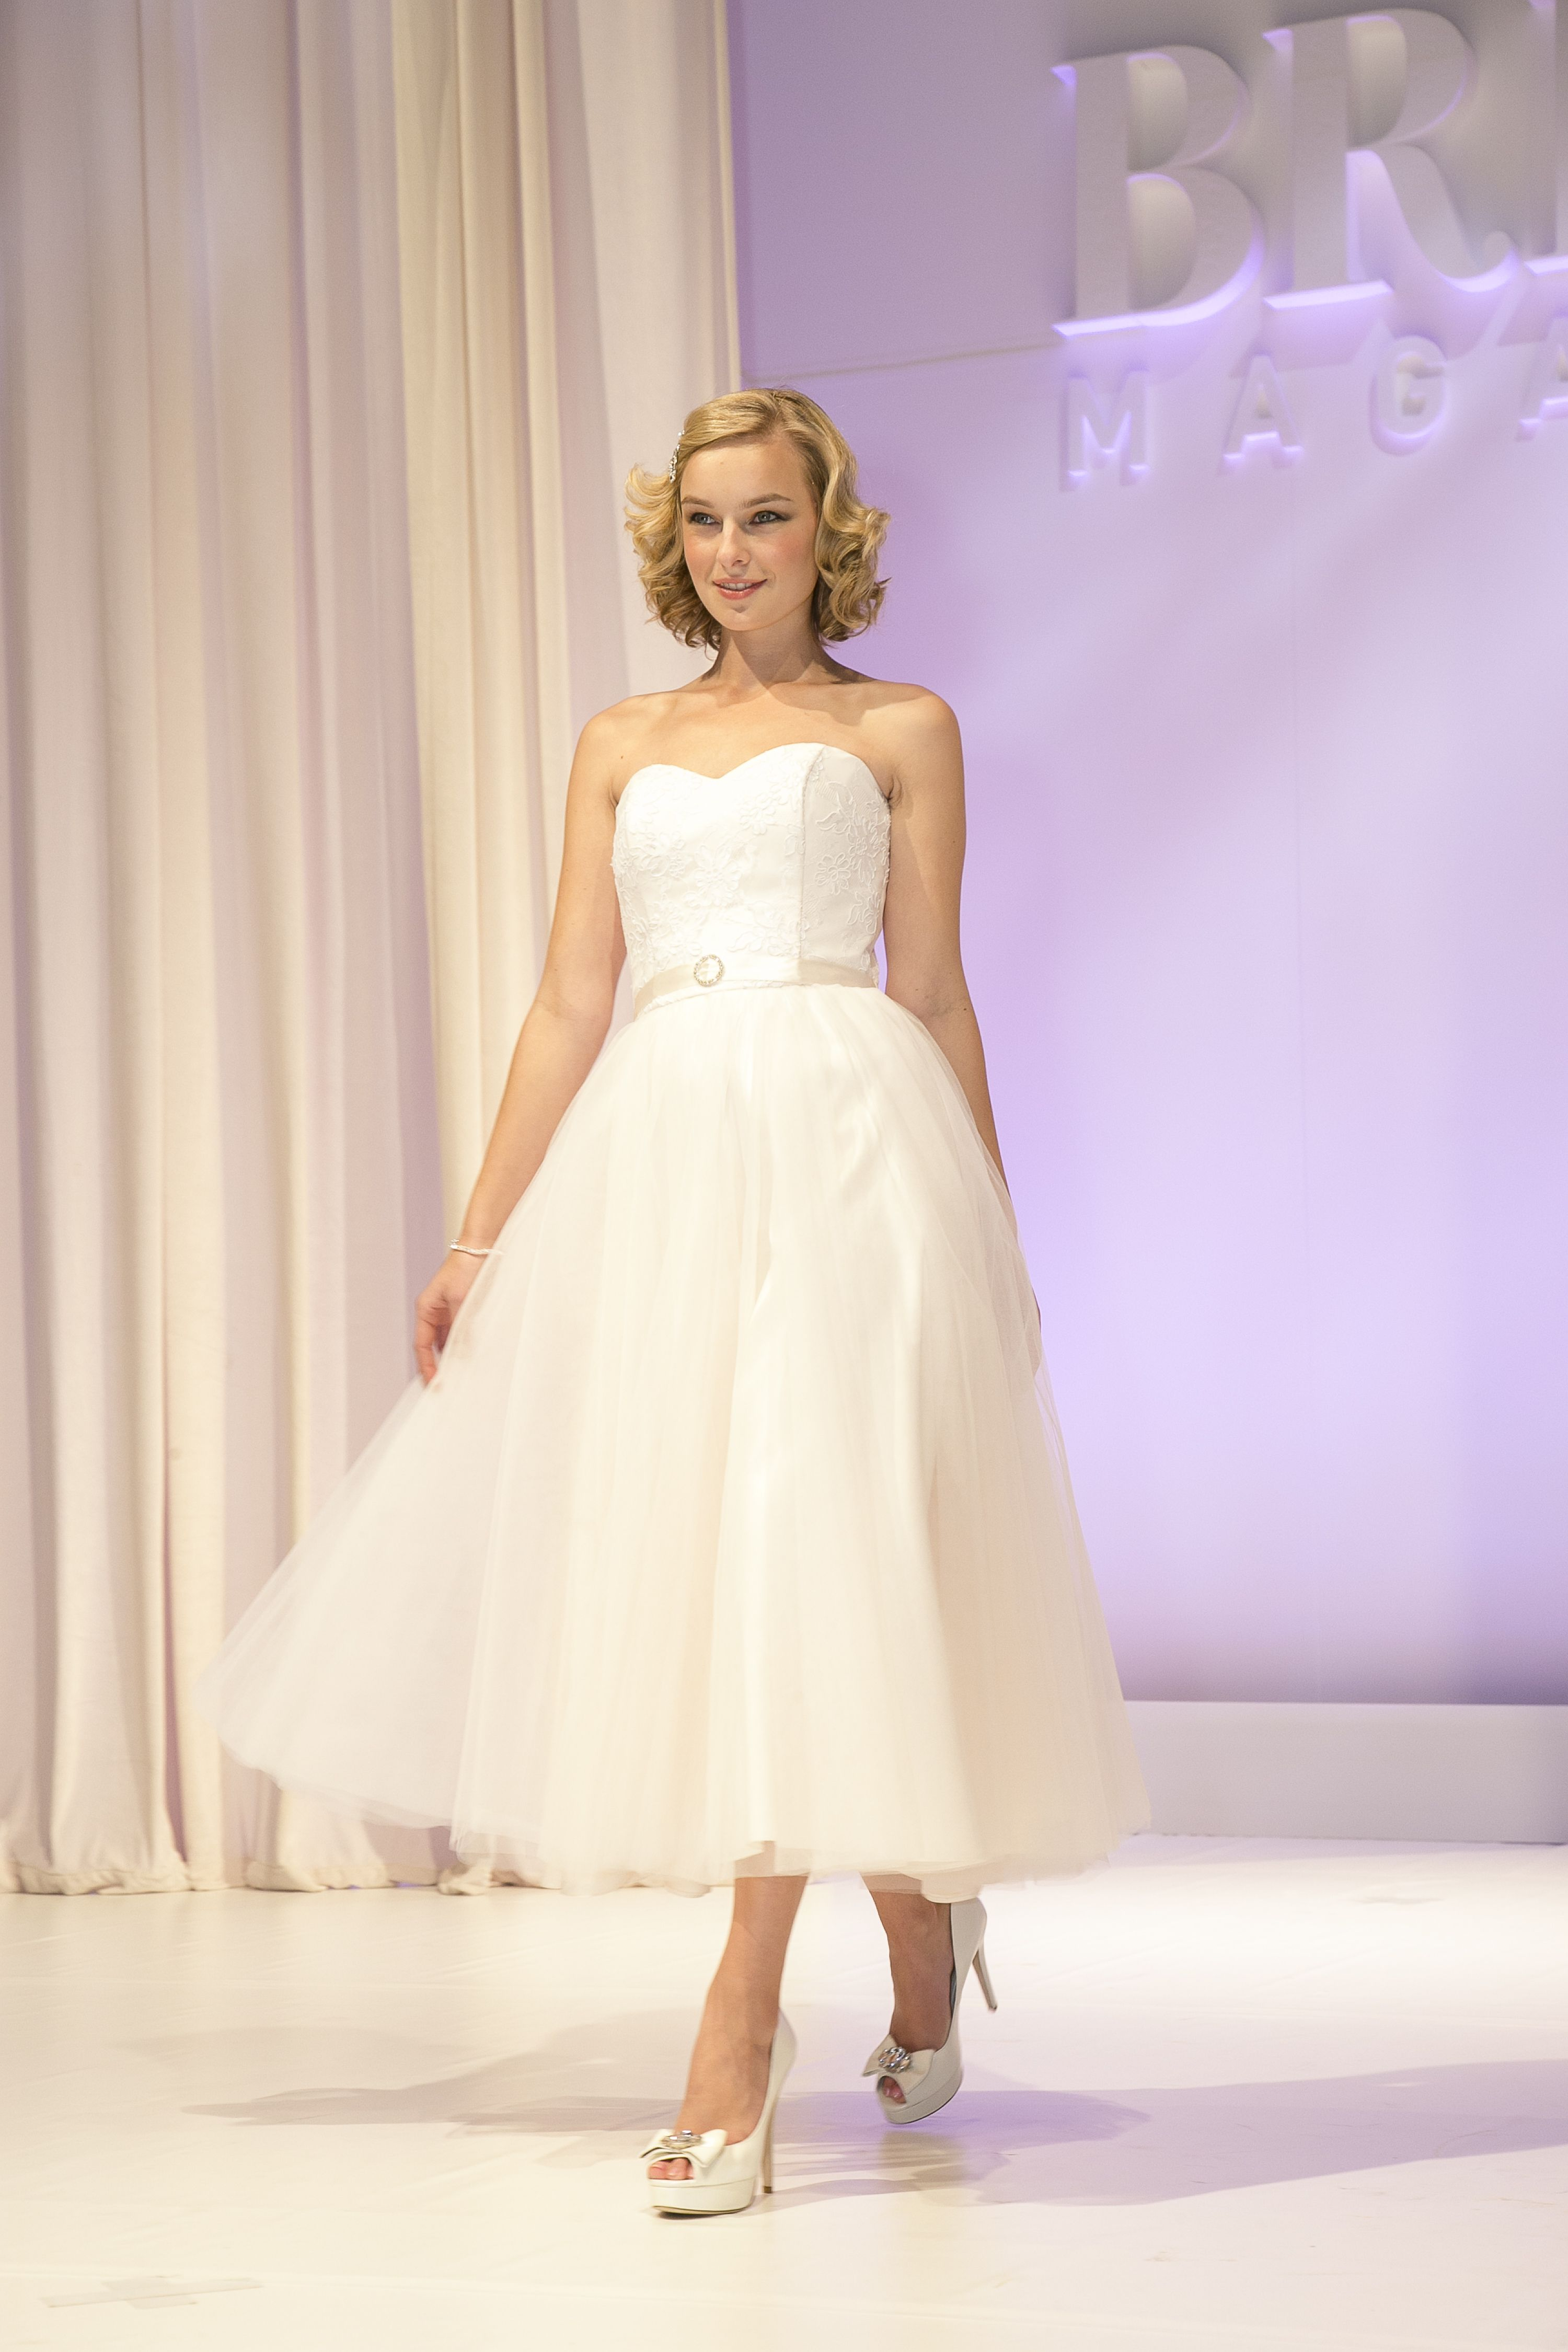 Cute short wedding dresses  Cute u short from Wendy Makin Cute shoes from shoesales